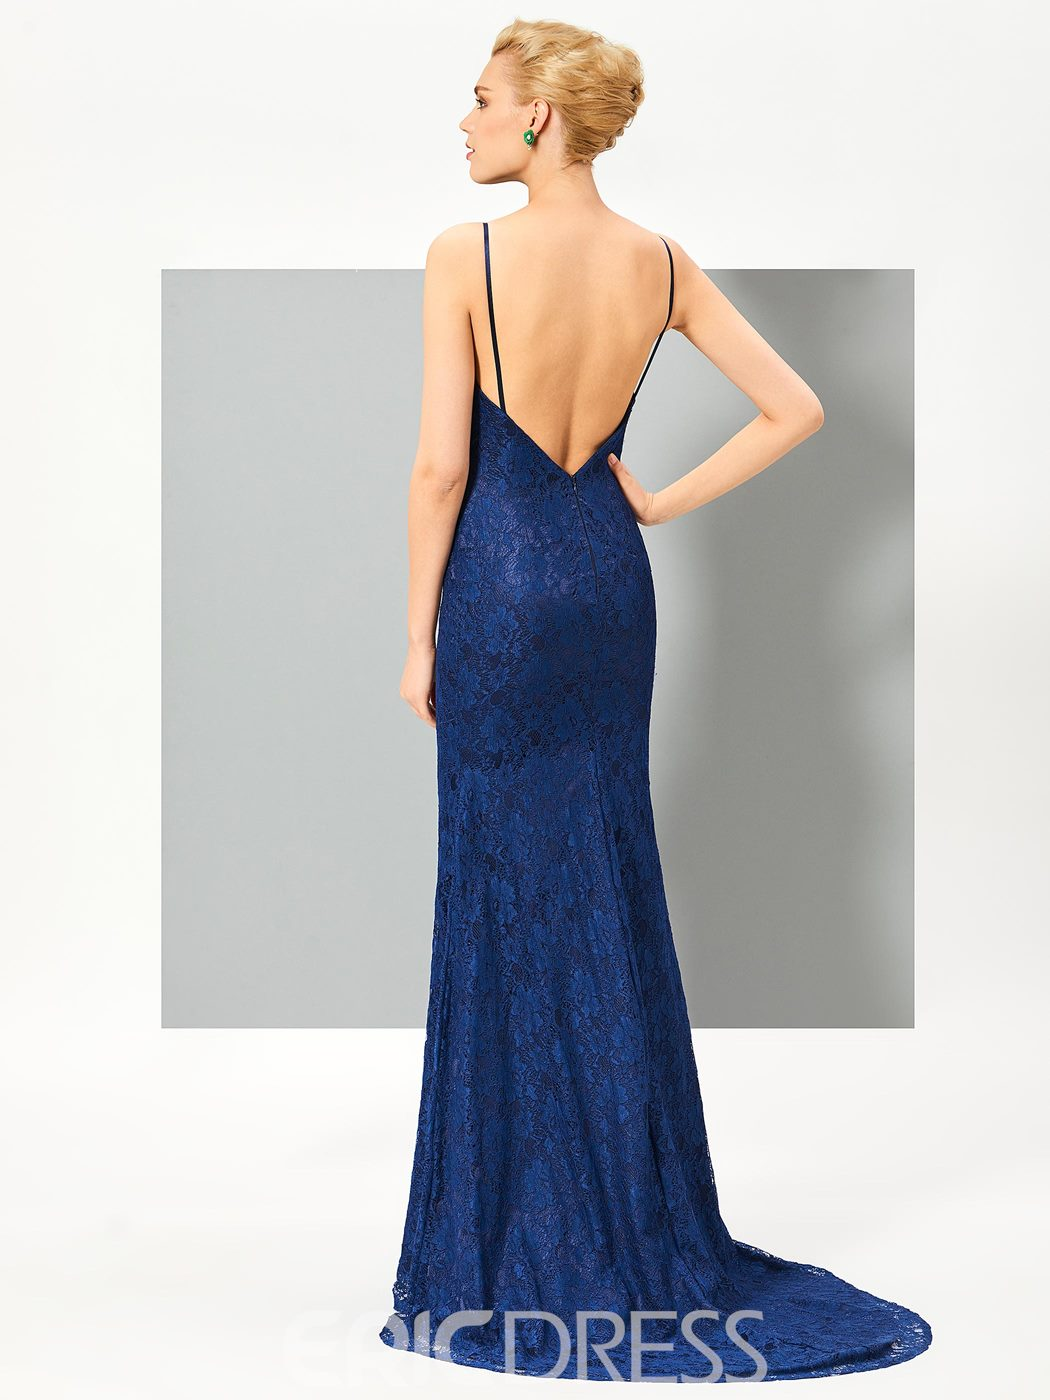 Ericdress Spaghetti Straps Backless Lace Mermaid Evening Dress With Beaded Cape